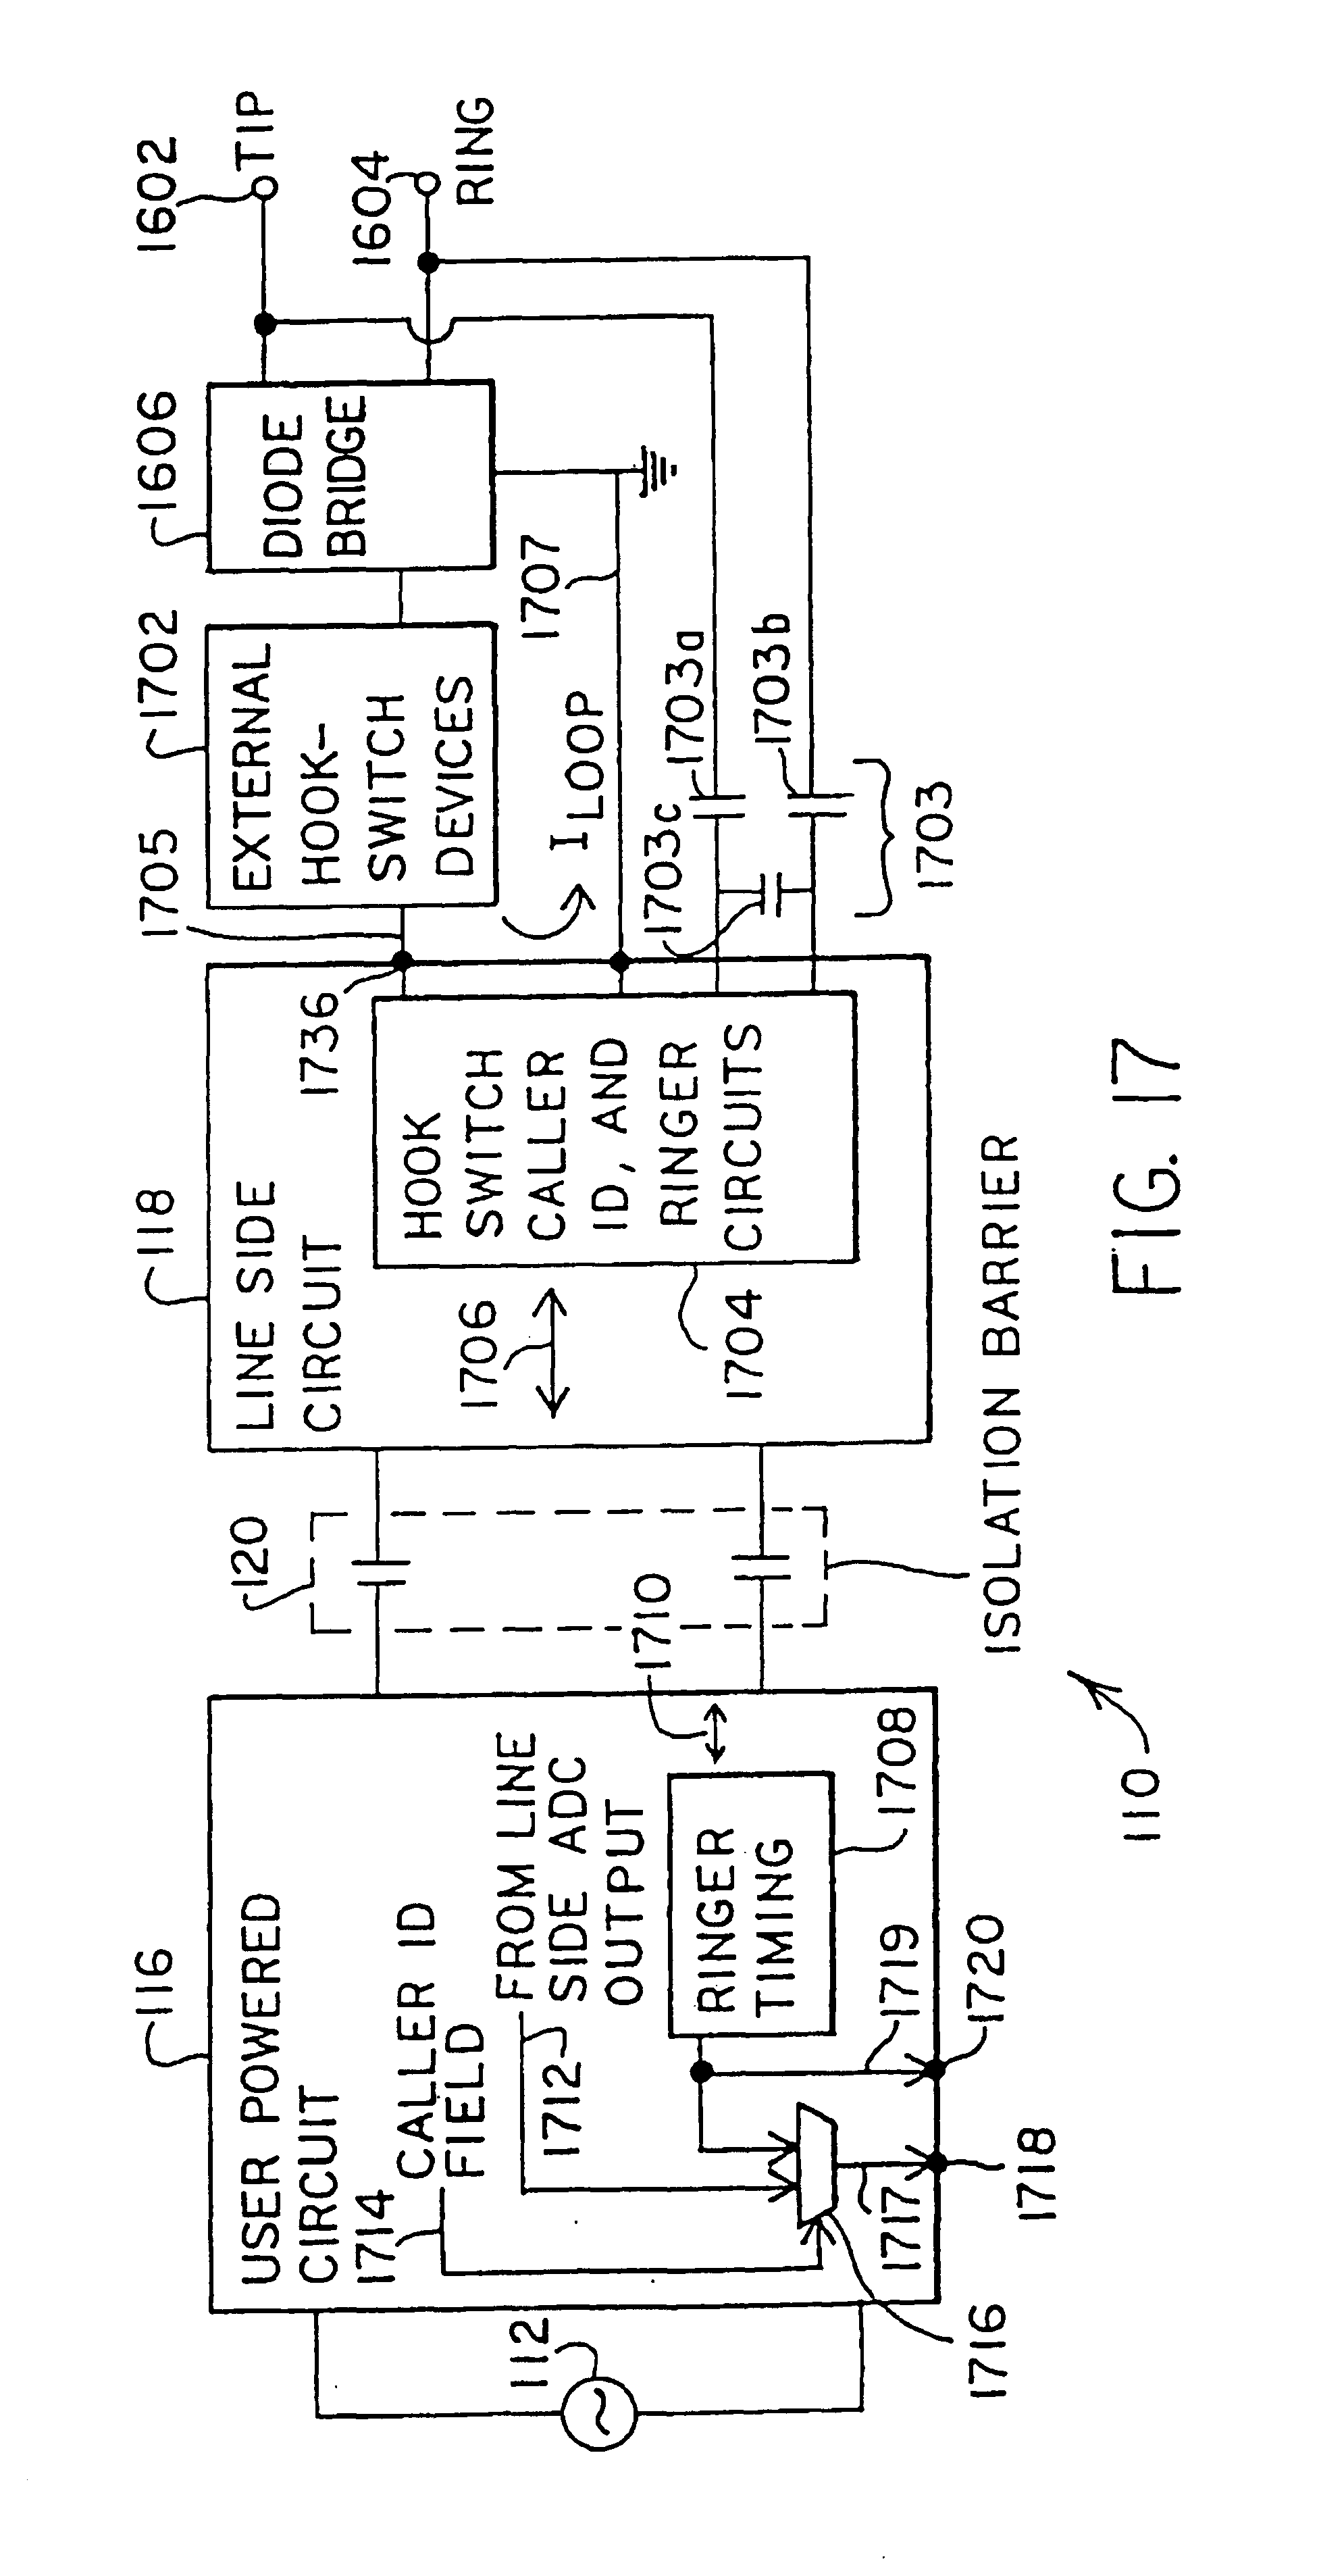 94d27u additionally Thyristor Based Static Var  pensator in addition Wireless power transfer moreover Stat  And Its Different Modes Of Operation besides Non Inverting Operational  lifier Circ. on capacitive coupling